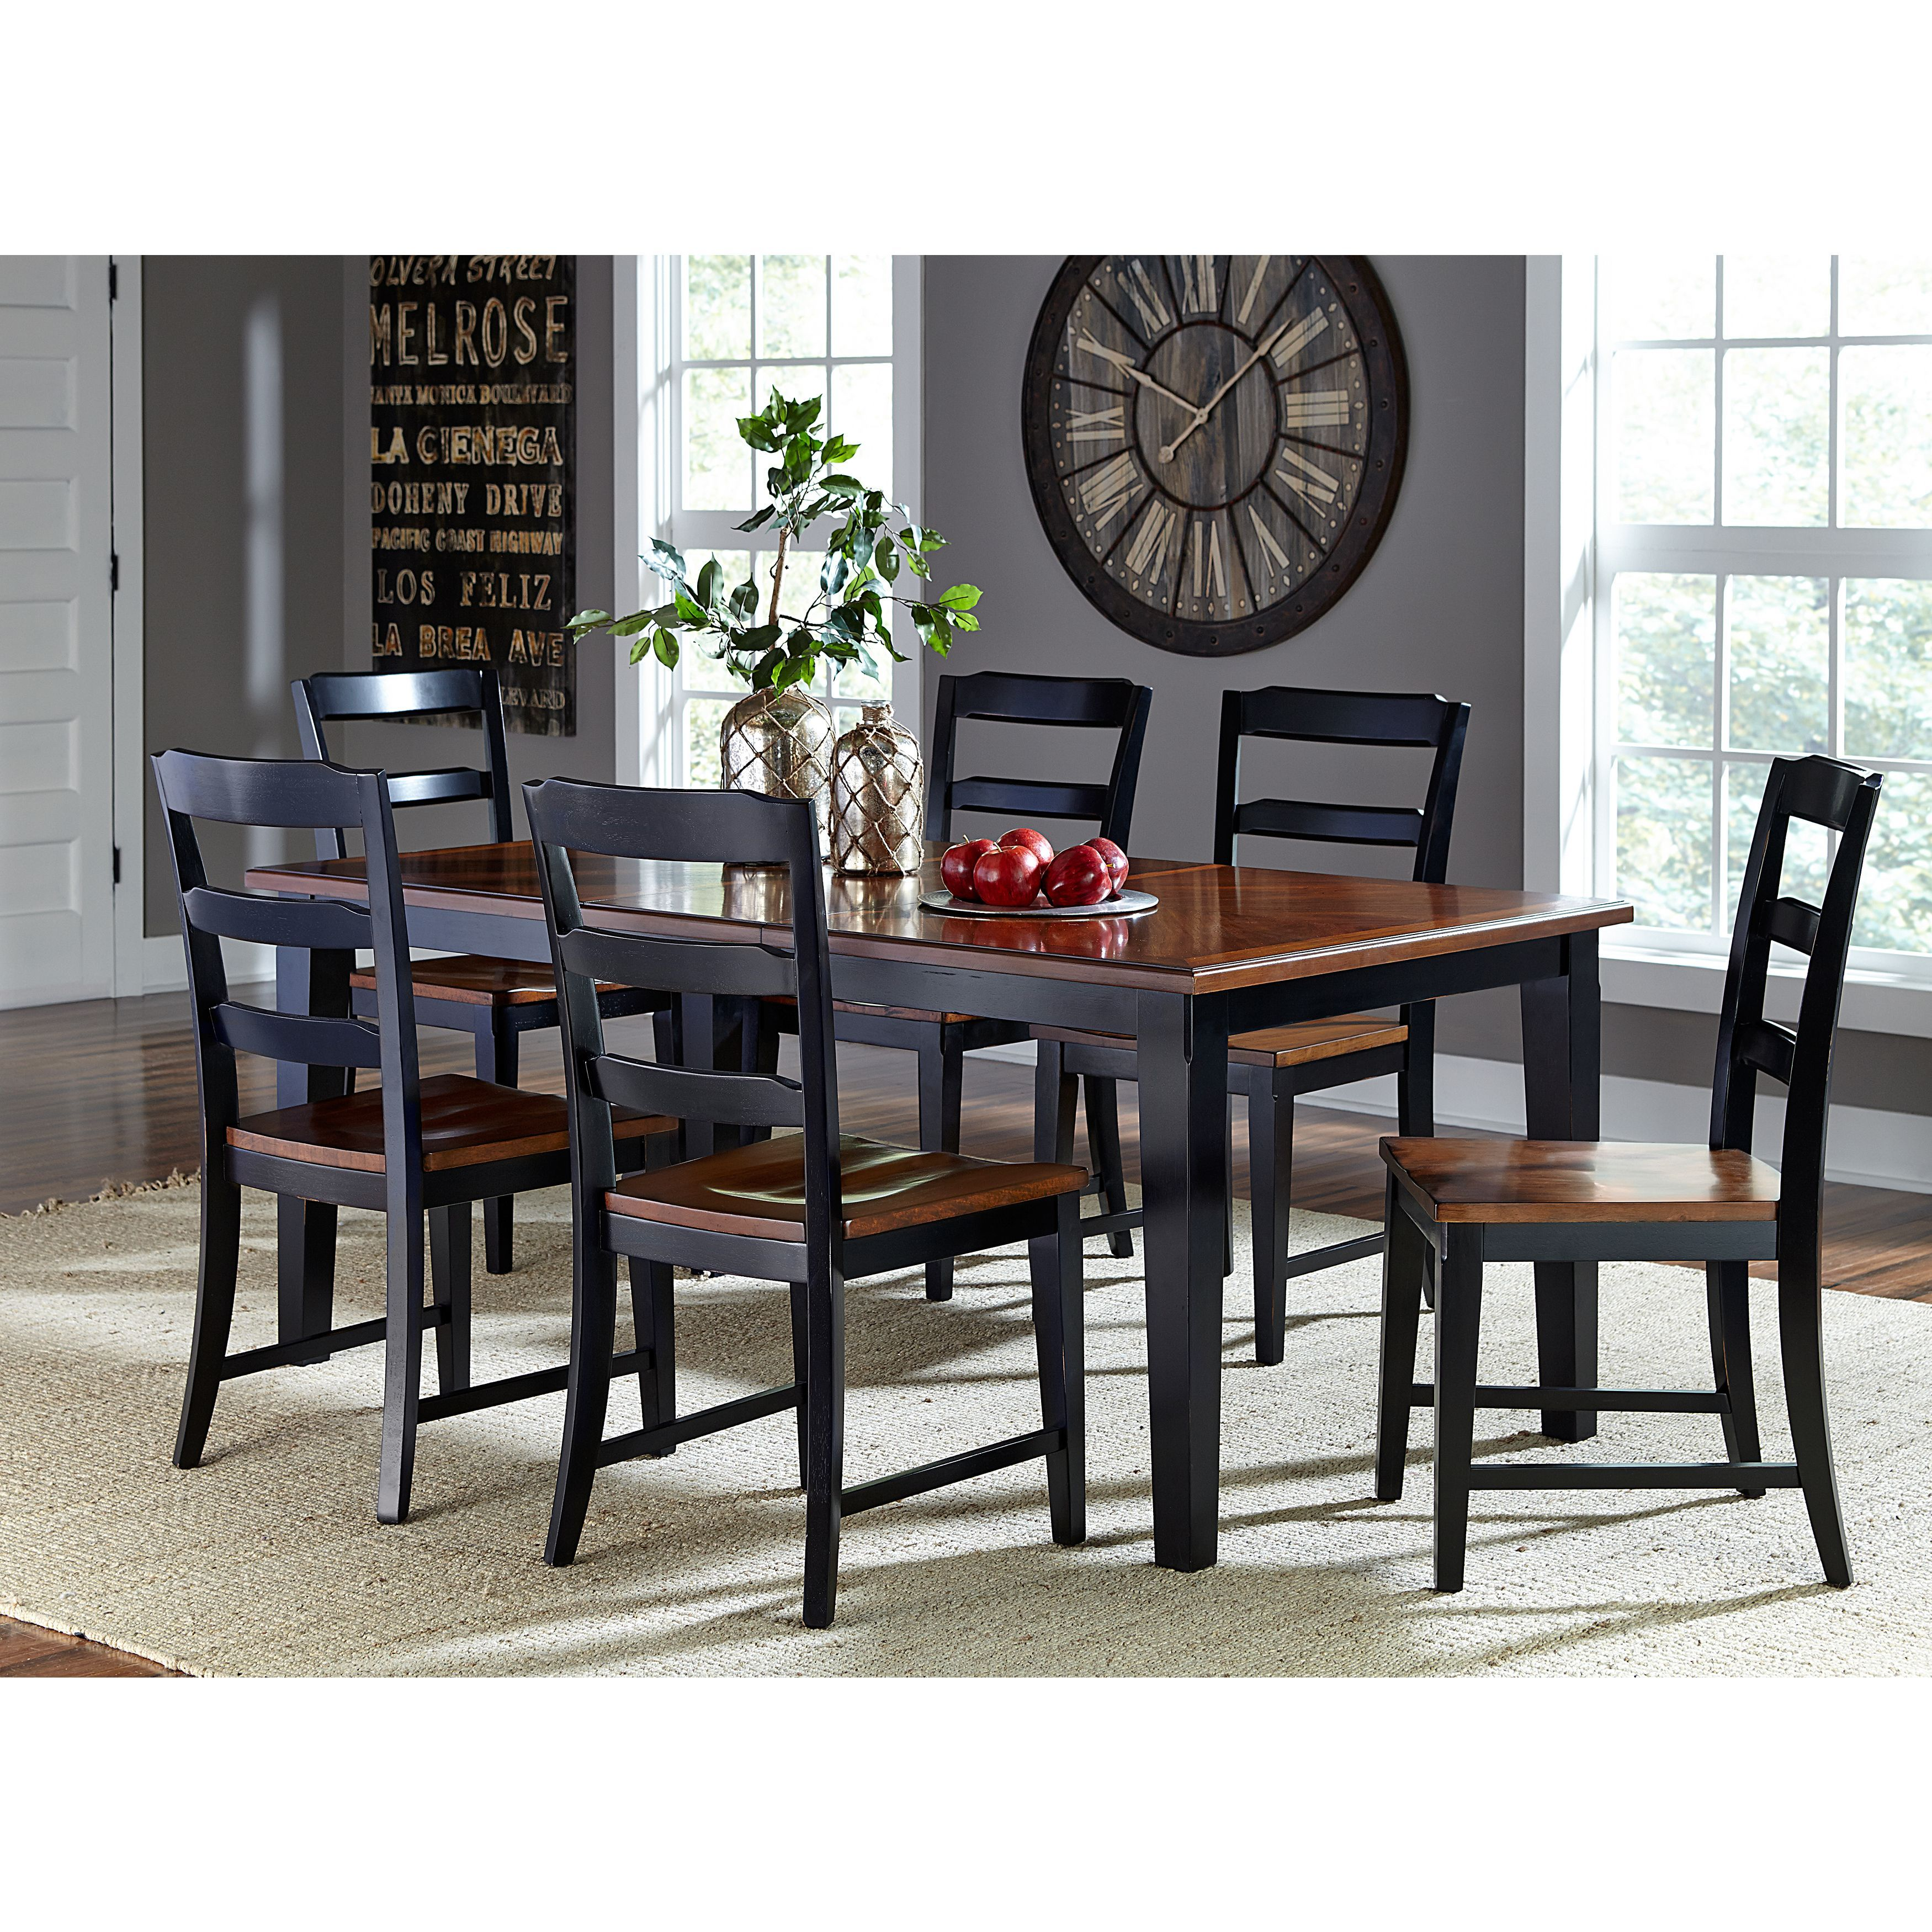 This elegant dining set features a cherry